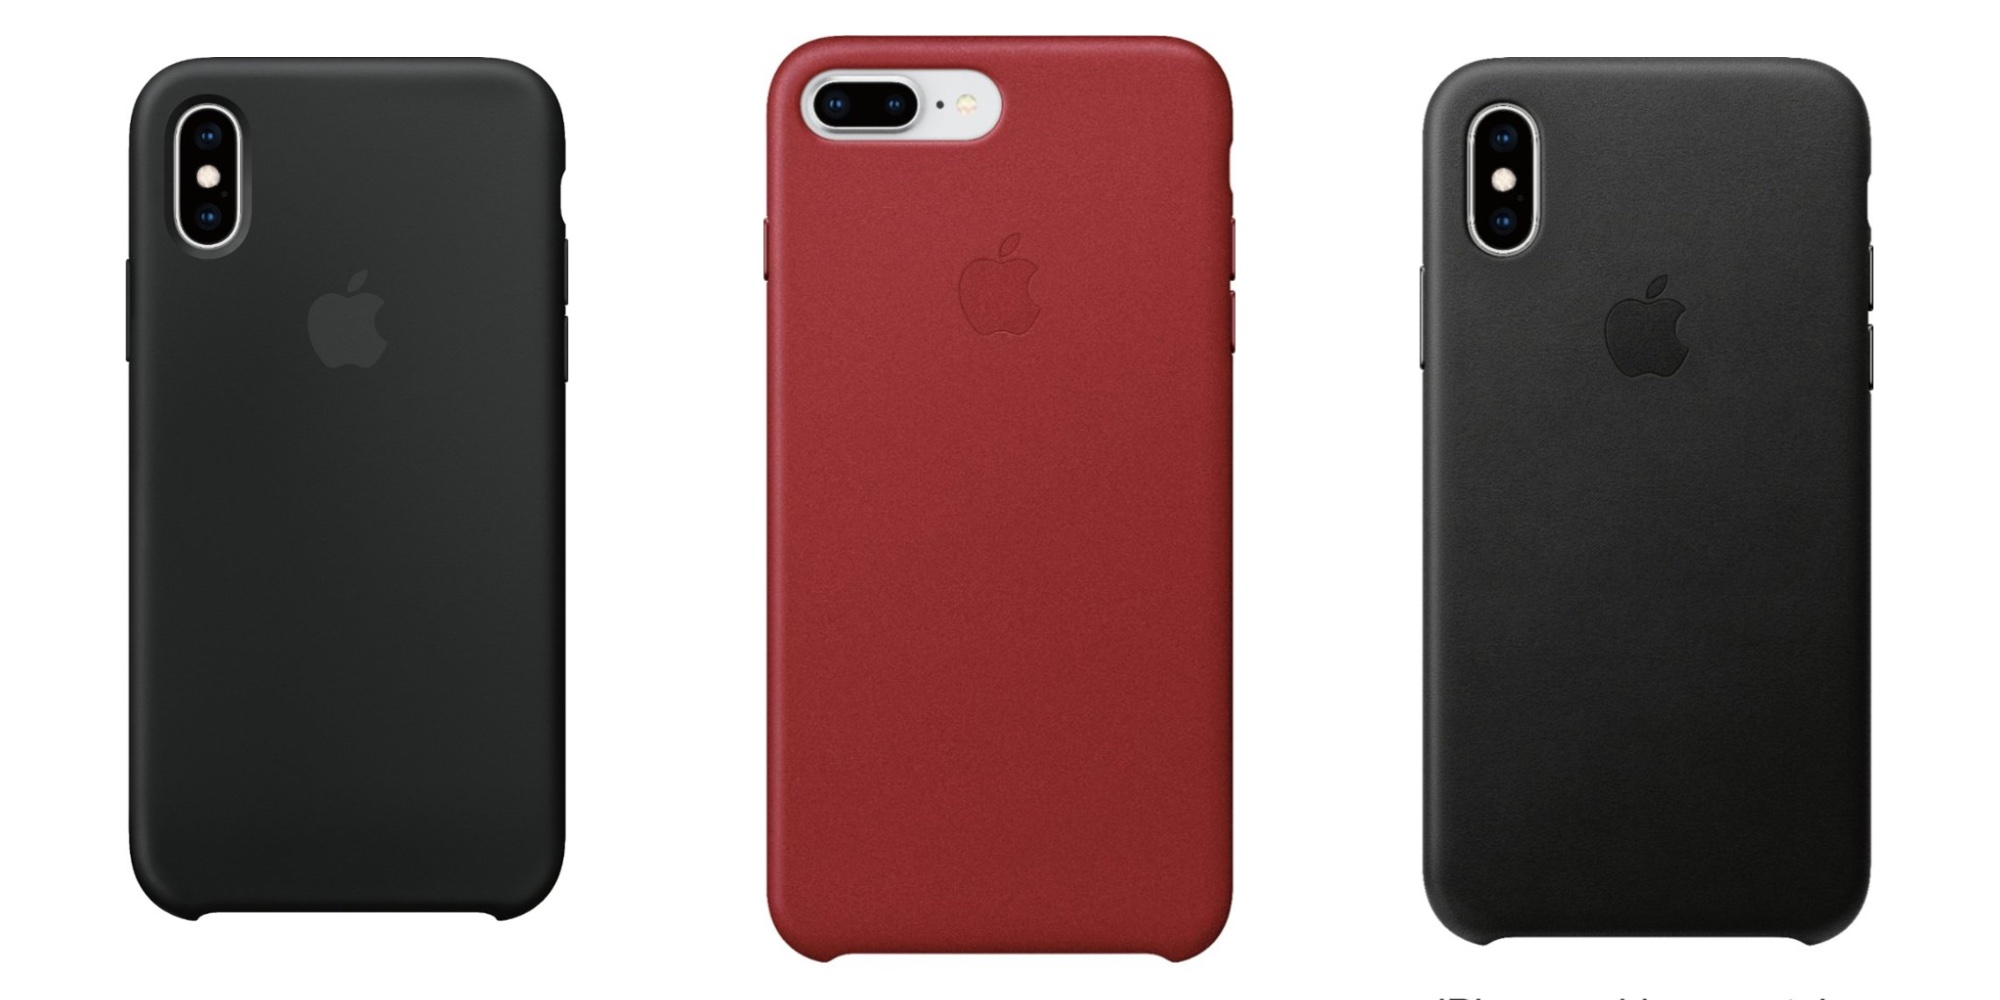 iphone xr bulider case